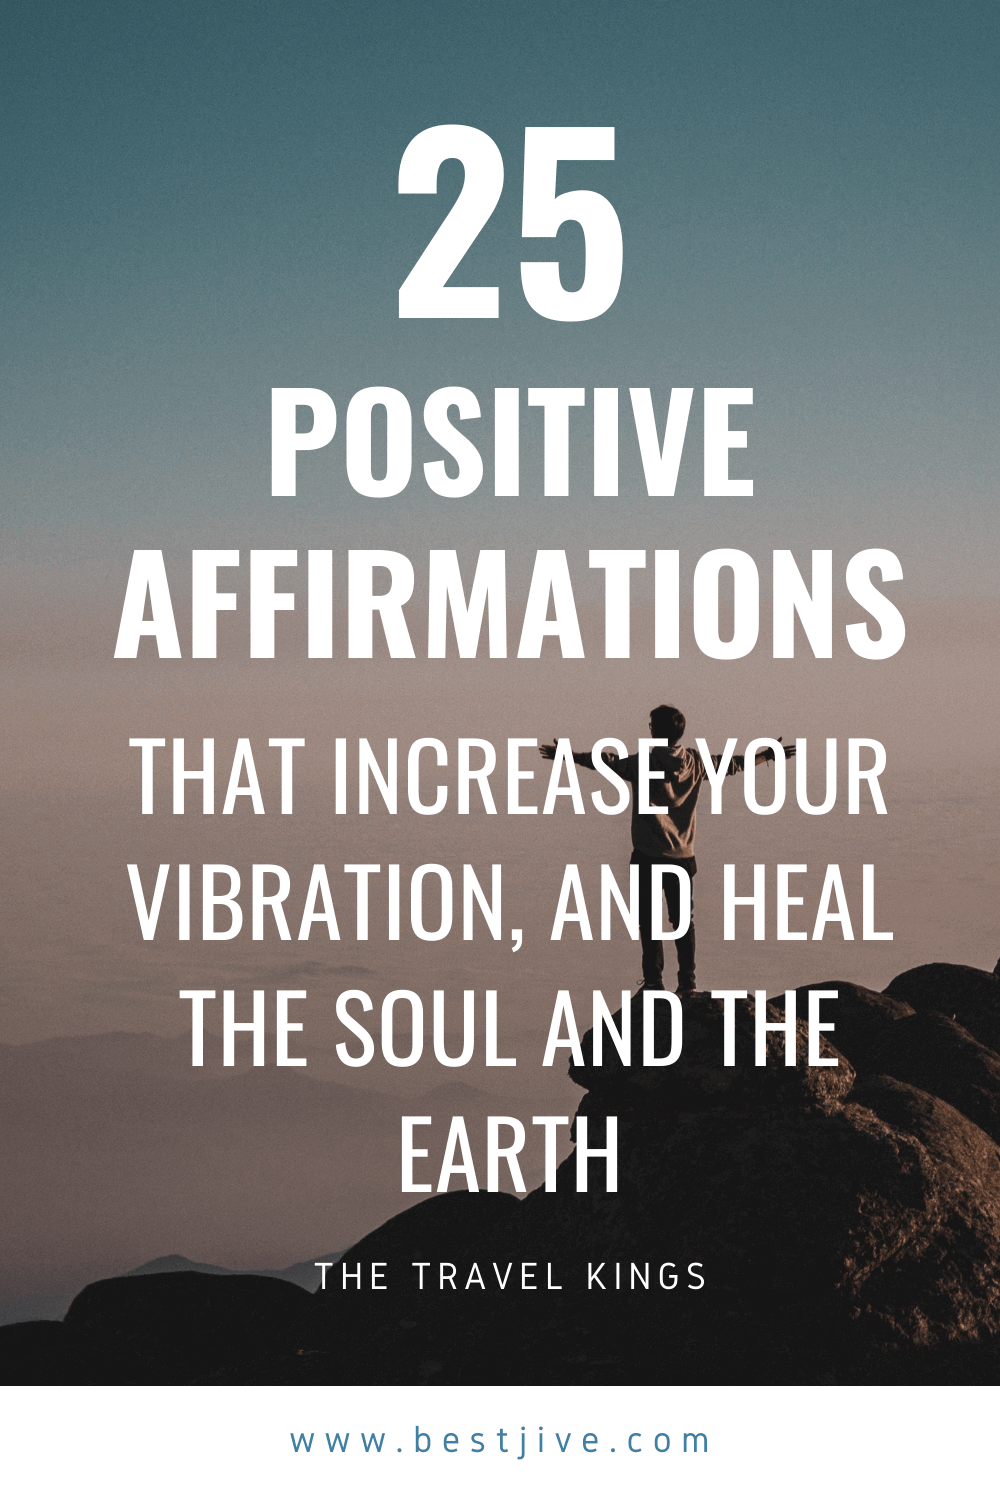 25 positive affirmations that increase your vibration, and heal the soul and the Earth